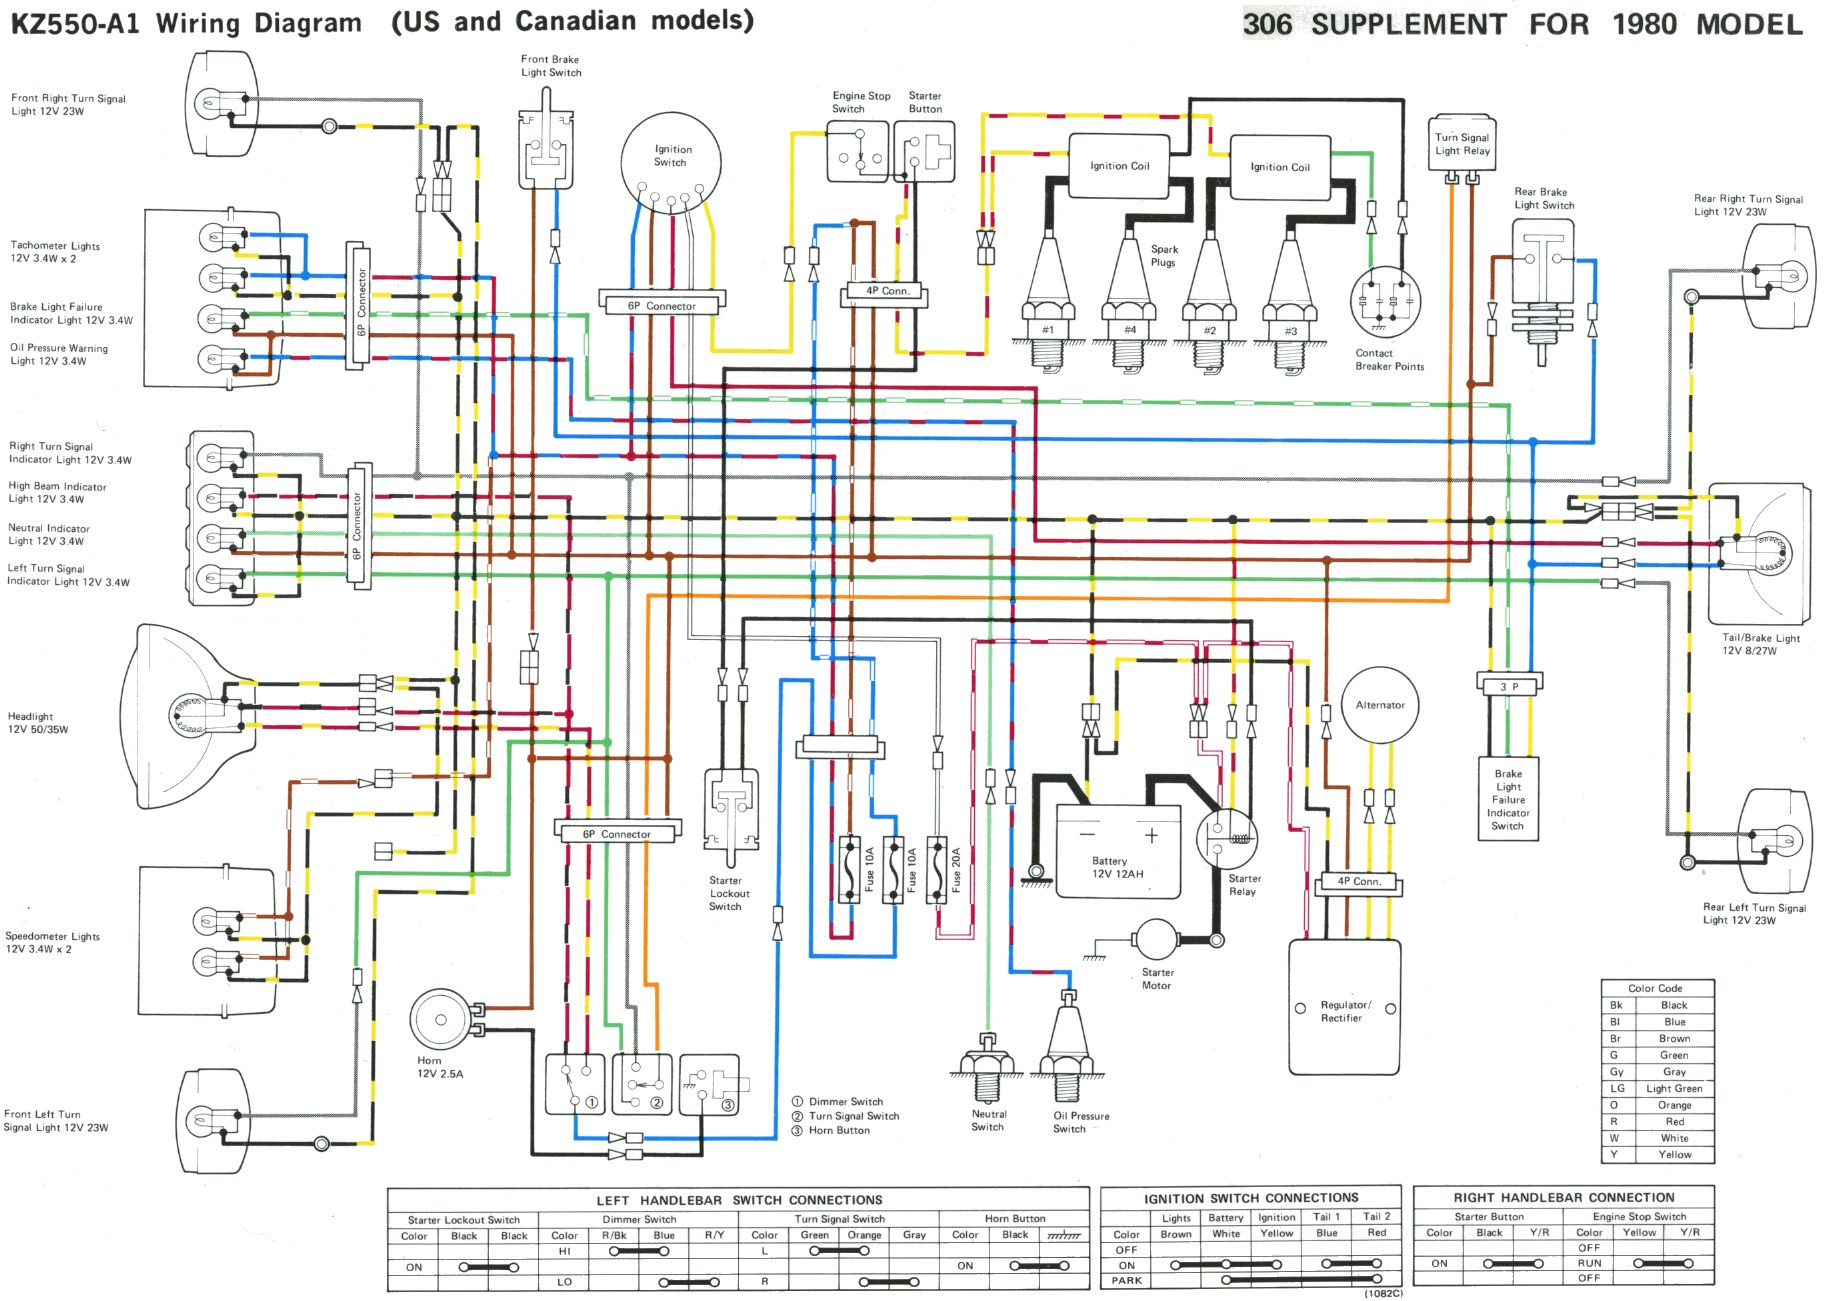 Kawasaki Z 750 Electrical Diagram Trusted Wiring Diagrams Z900 A4 Csr 305 K Exhaust Ninka Z650